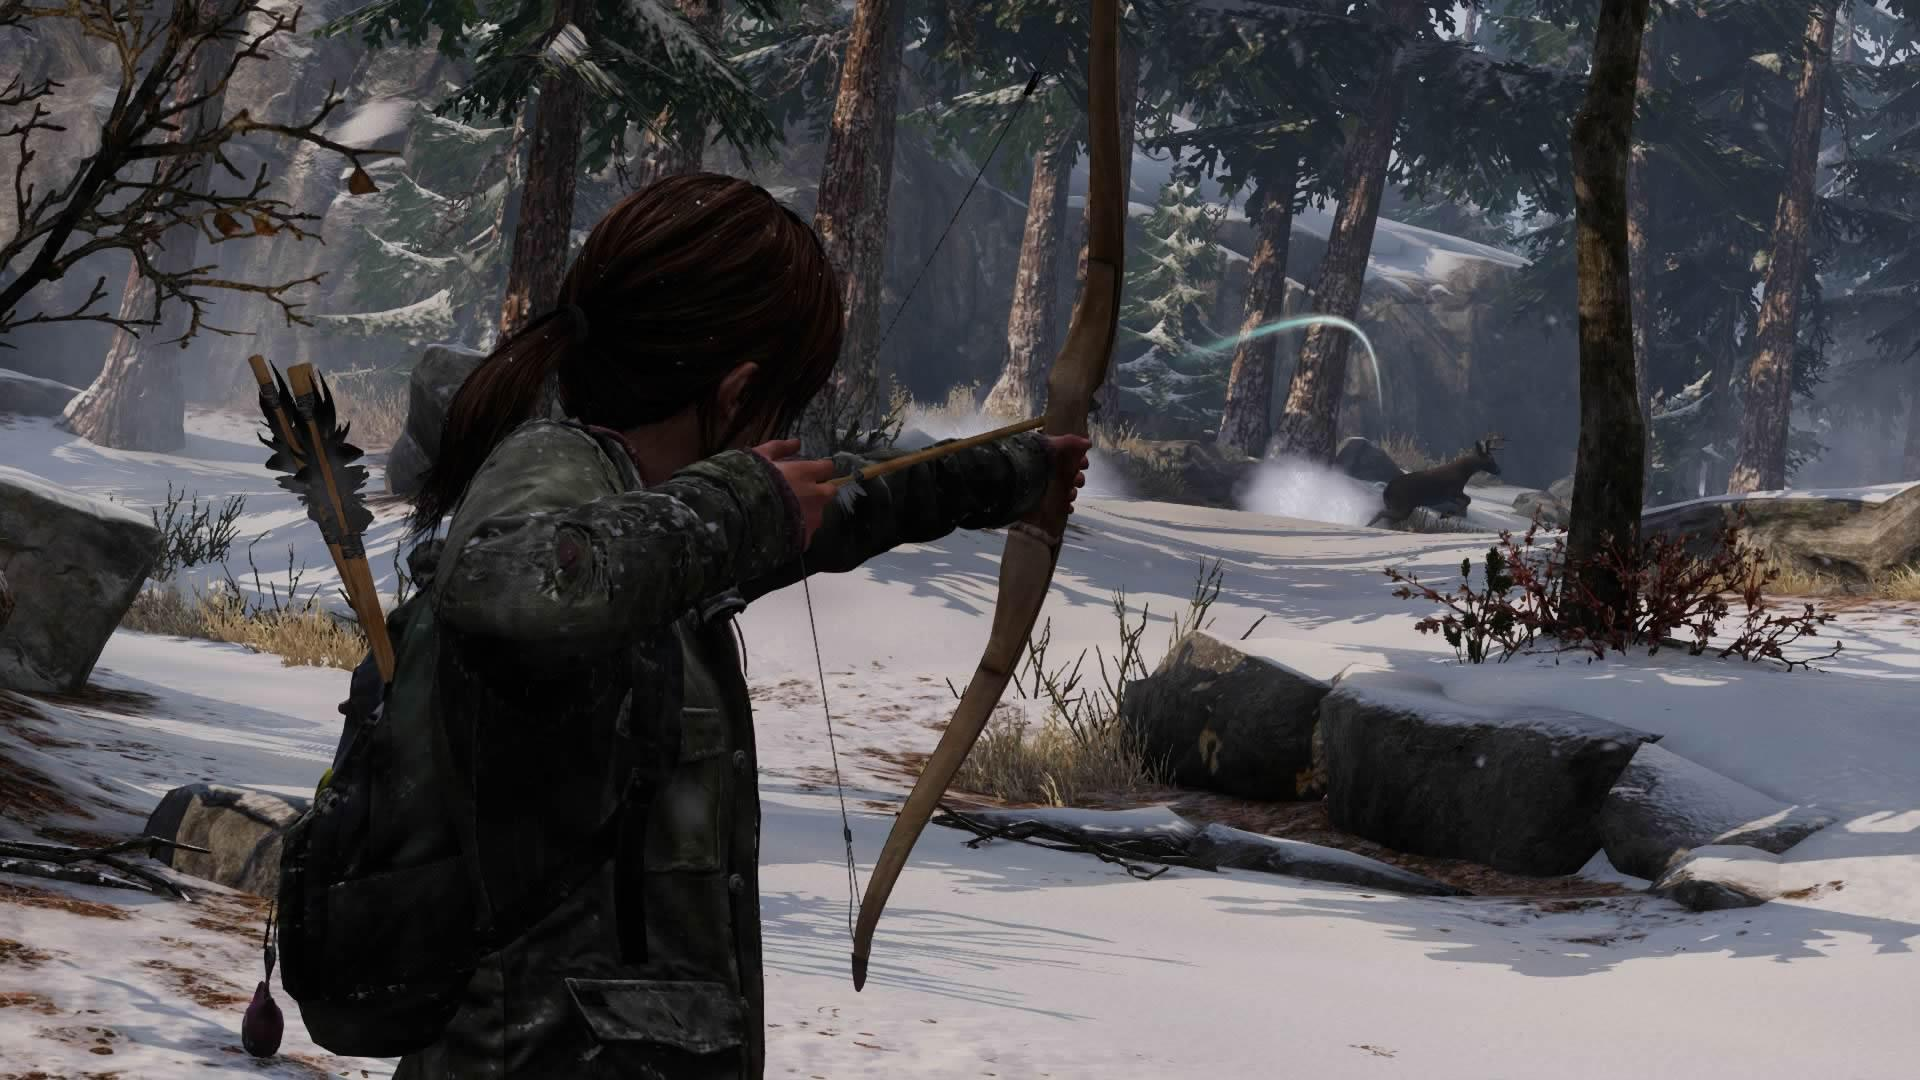 View Larger - Last Of Us Remastered View , HD Wallpaper & Backgrounds